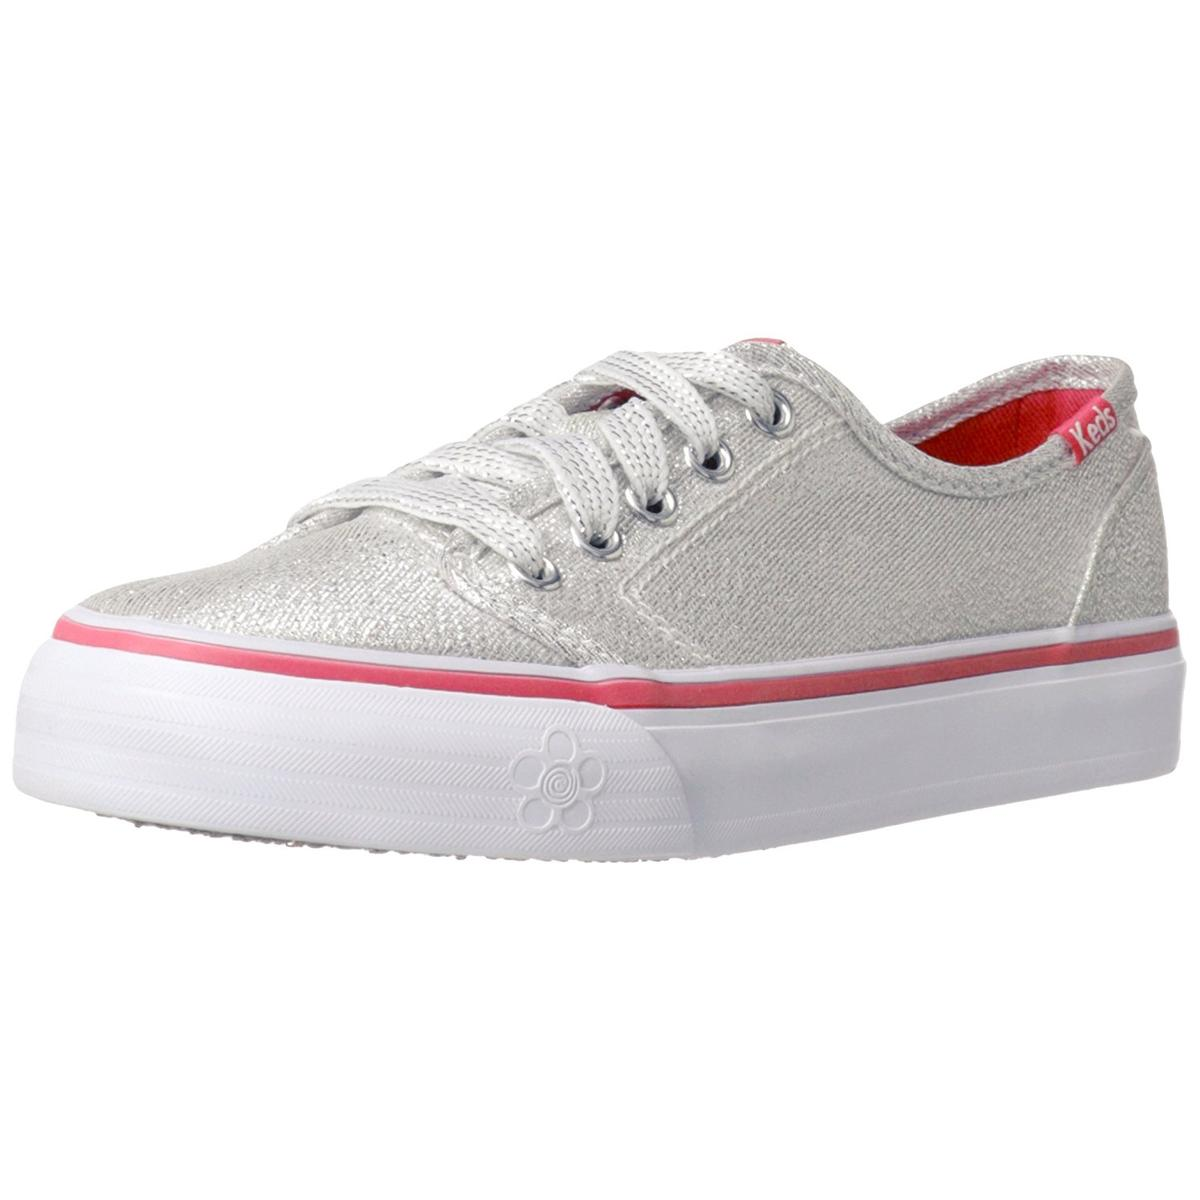 Keds Double Dutch Girls Silver Pink Sneakers by Keds